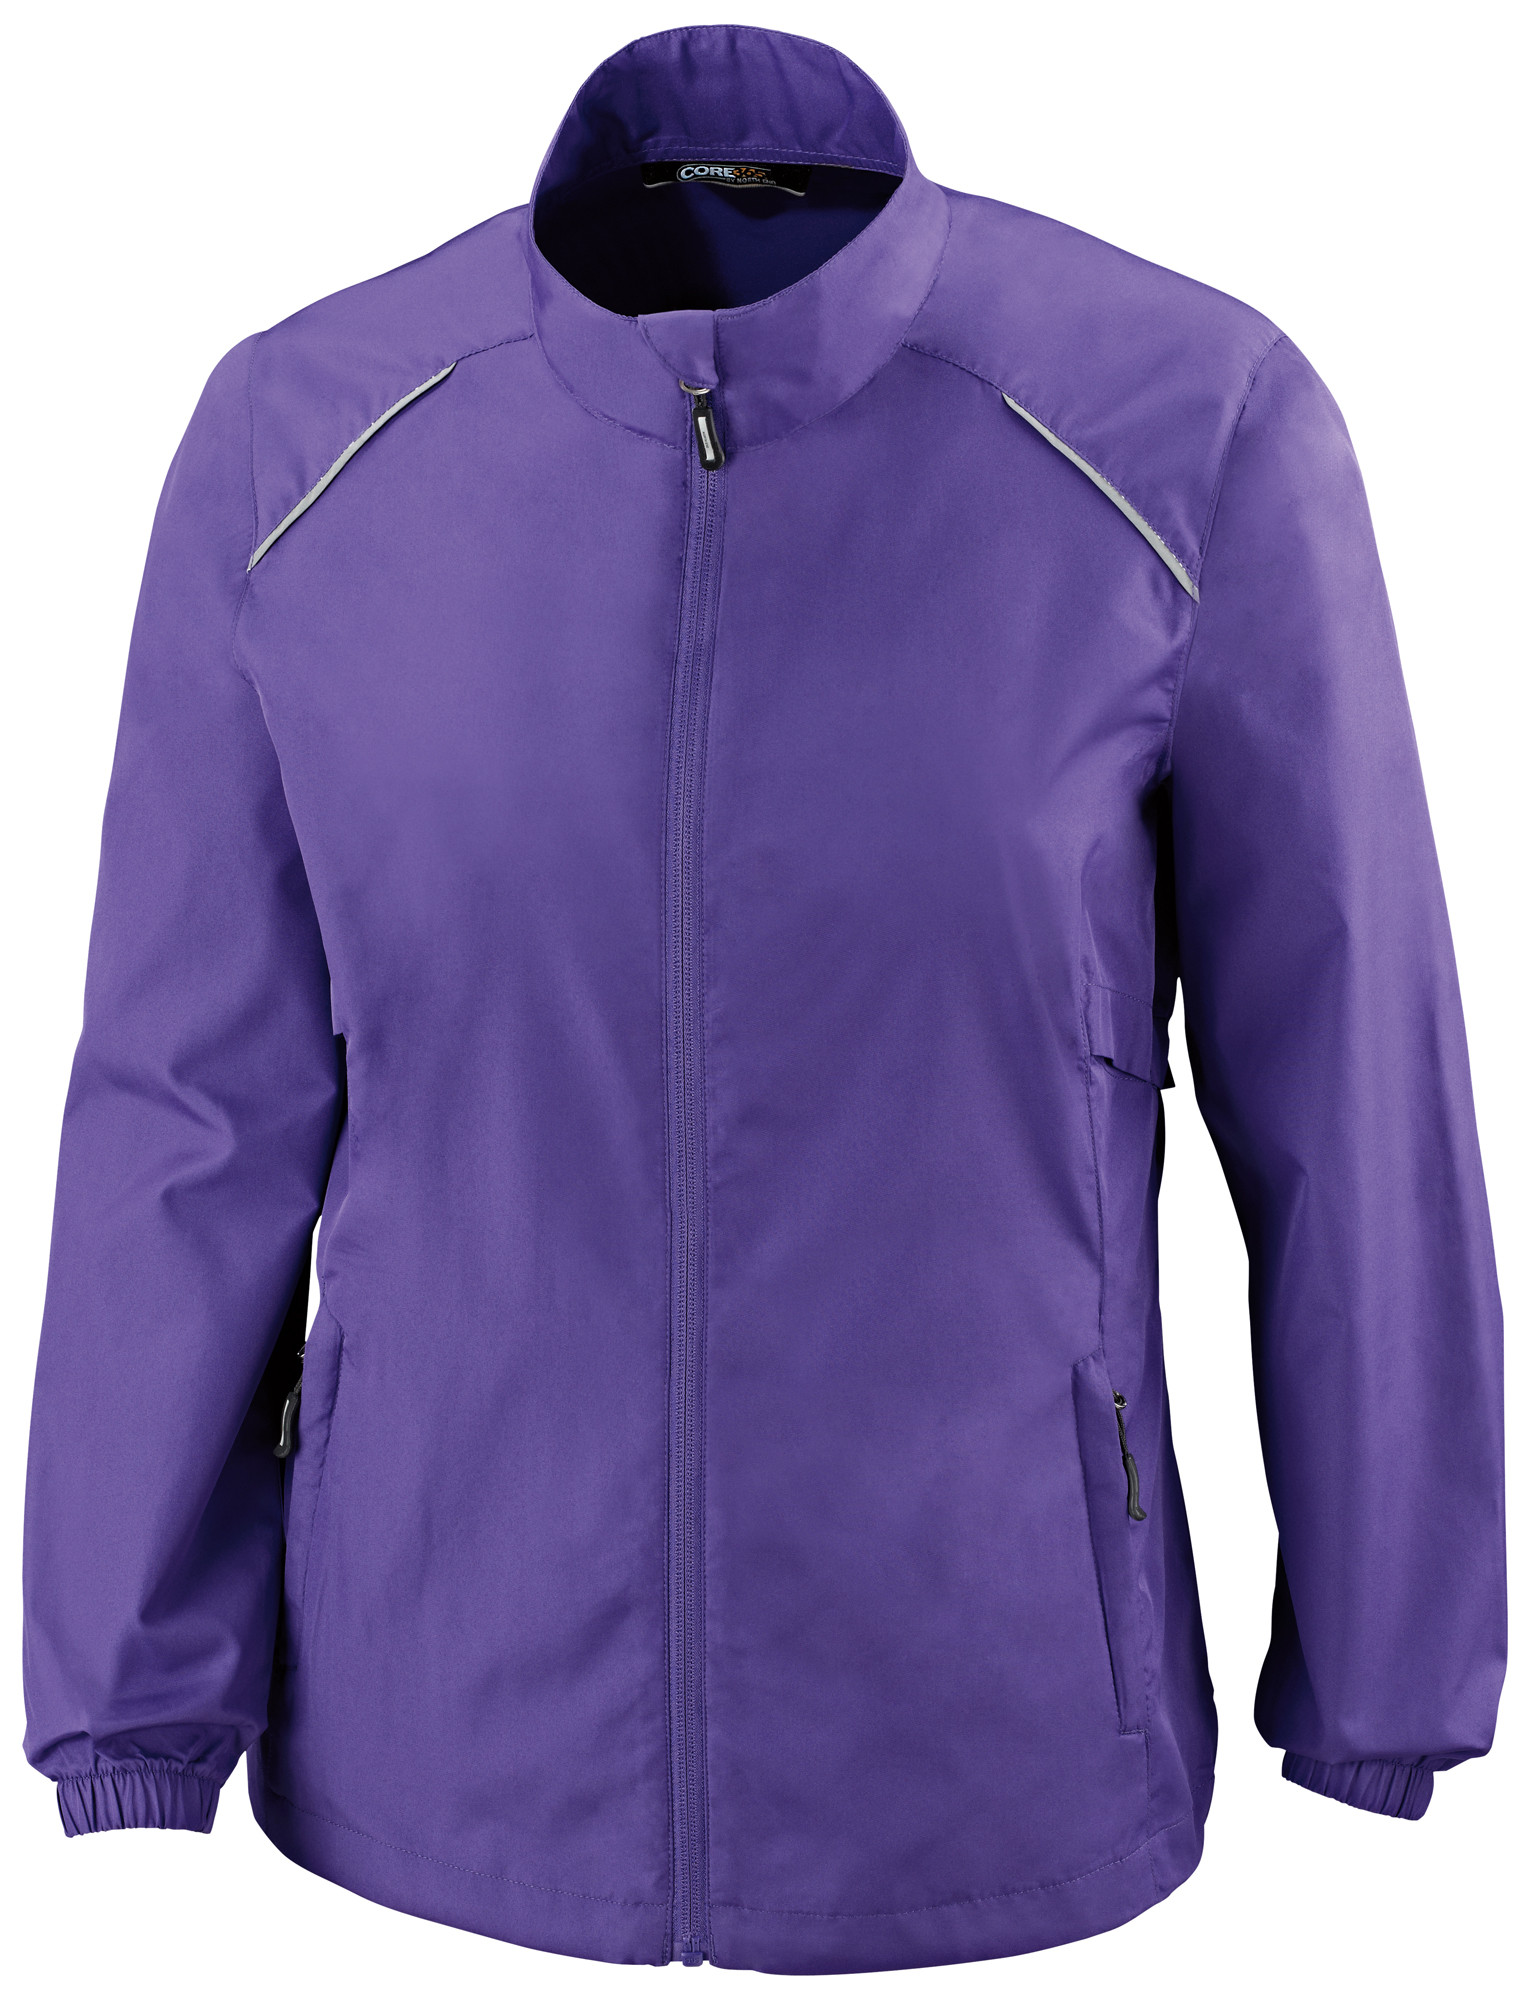 Ash City Core365 78183 - Motivate Core365 Outwear Ladies'...